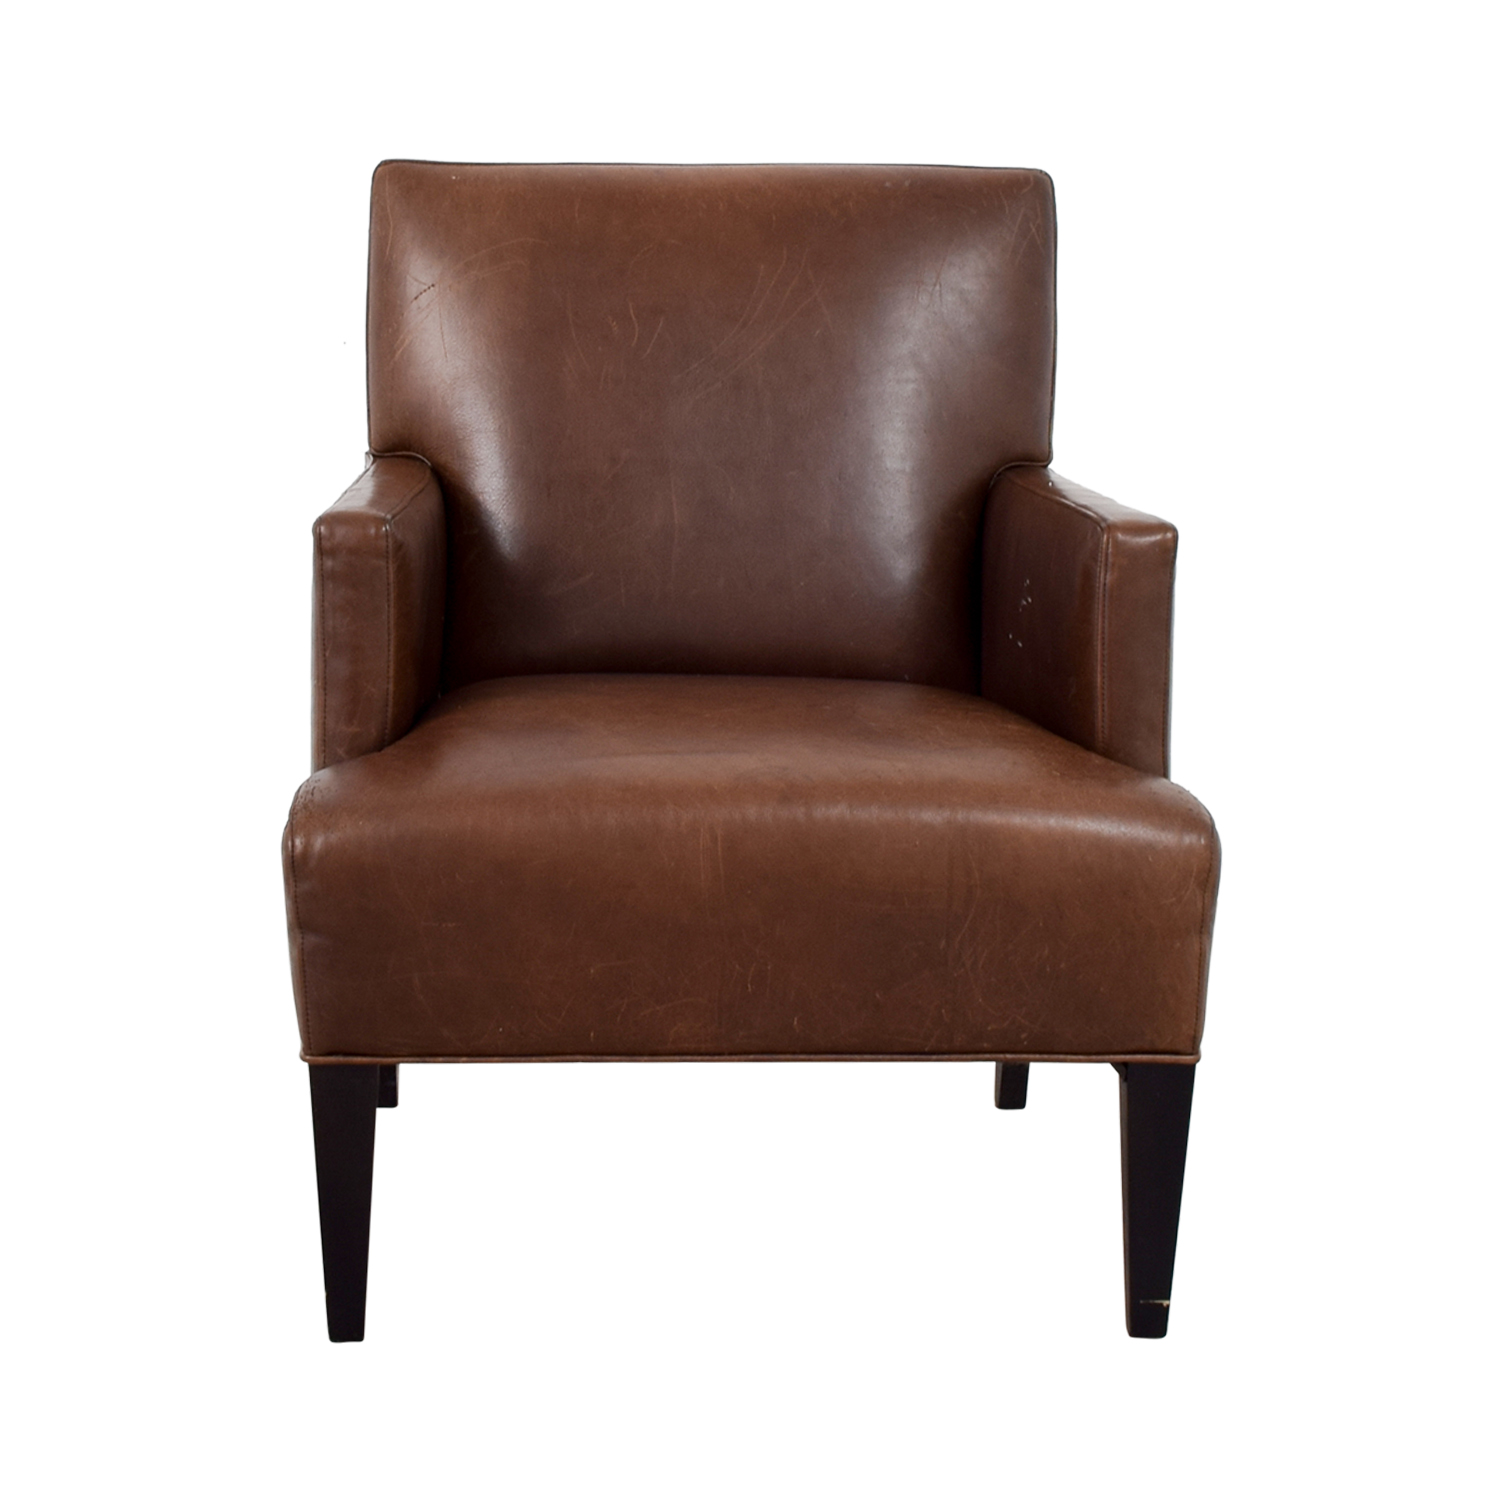 Crate & Barrel Crate & Barrel Brown Leather Arm Chair second hand